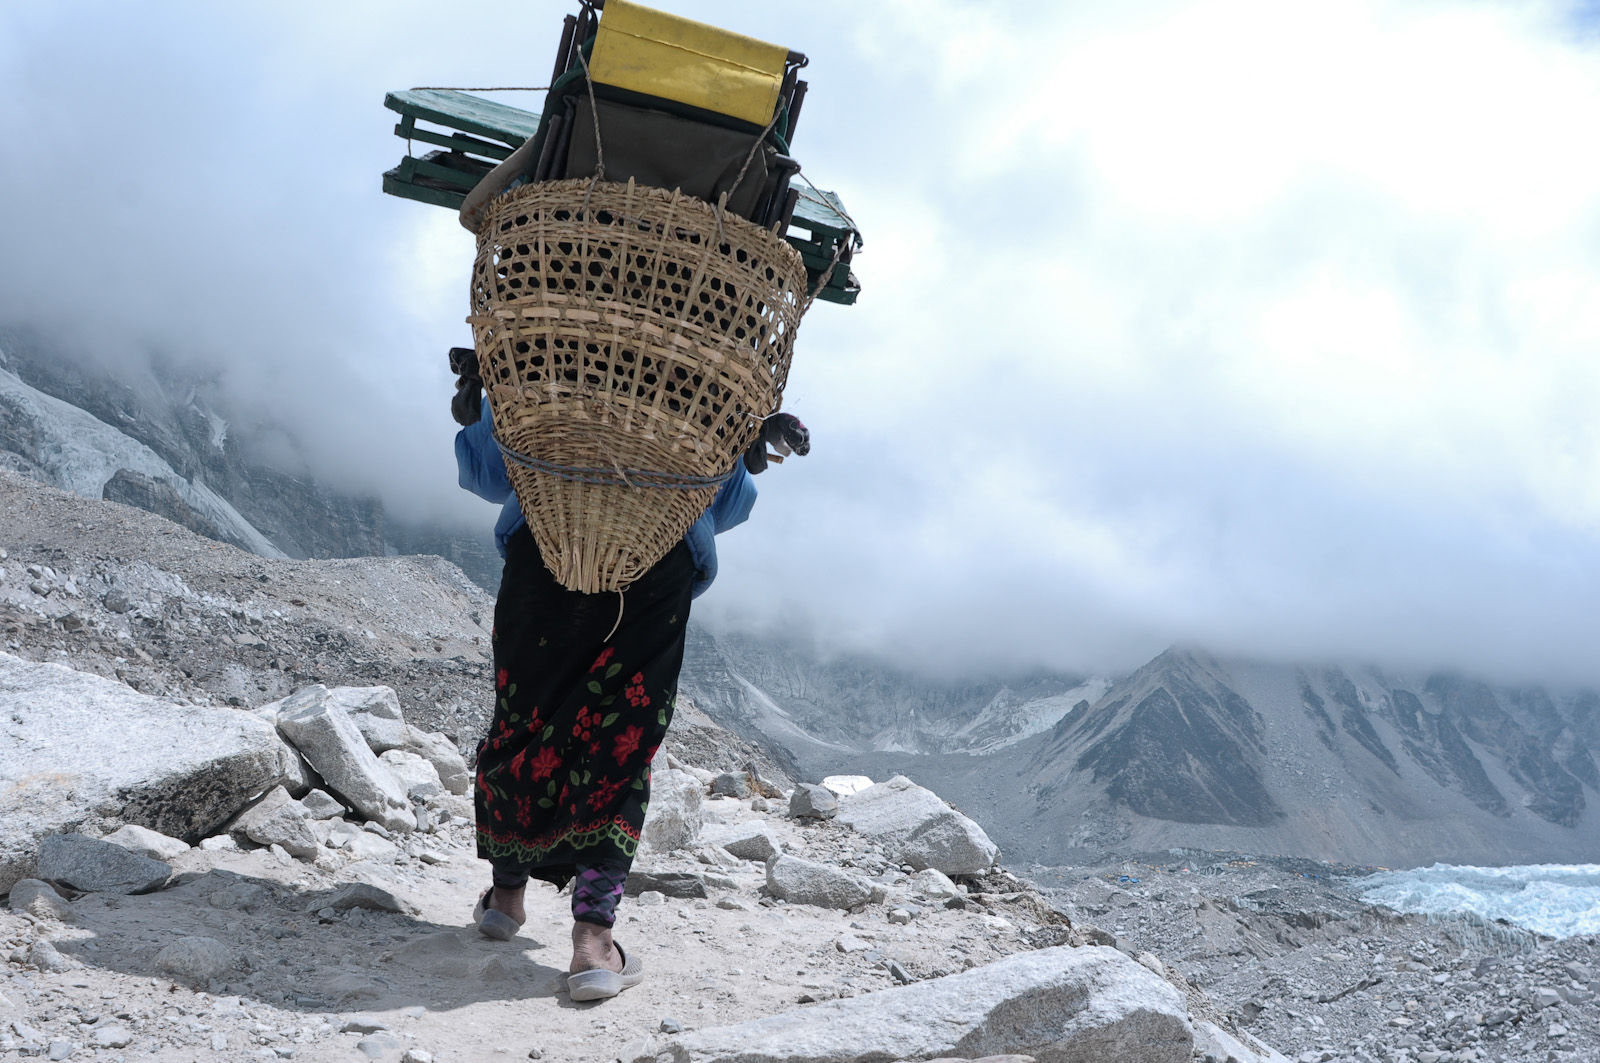 A woman porter trudges the Everest trail near base camp with provisions for climbers headed for the summit.